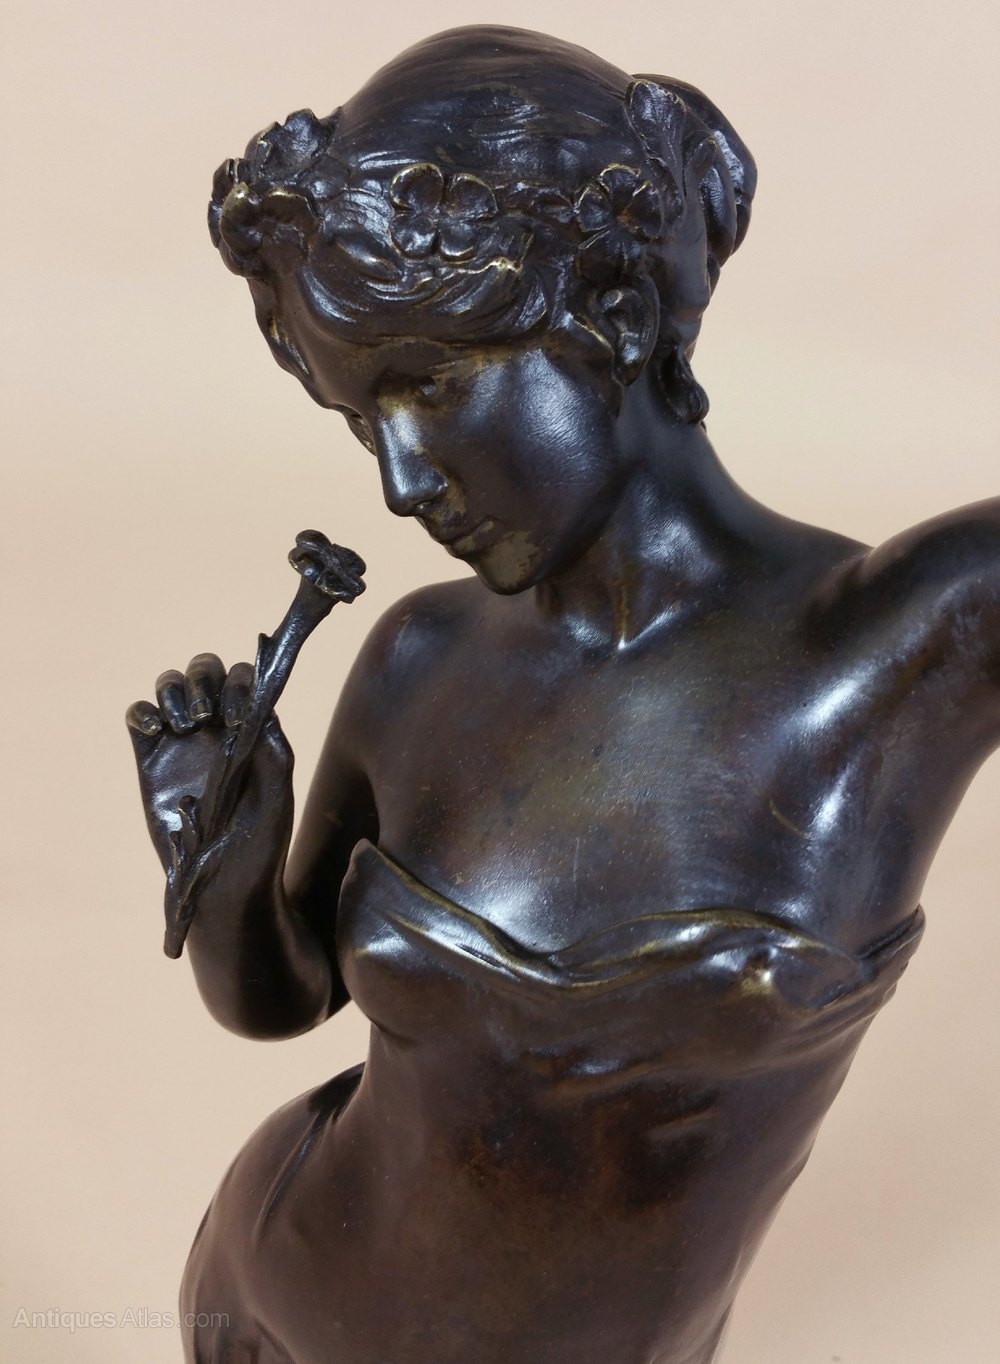 The price of the reign Limited edition bronze sculpture